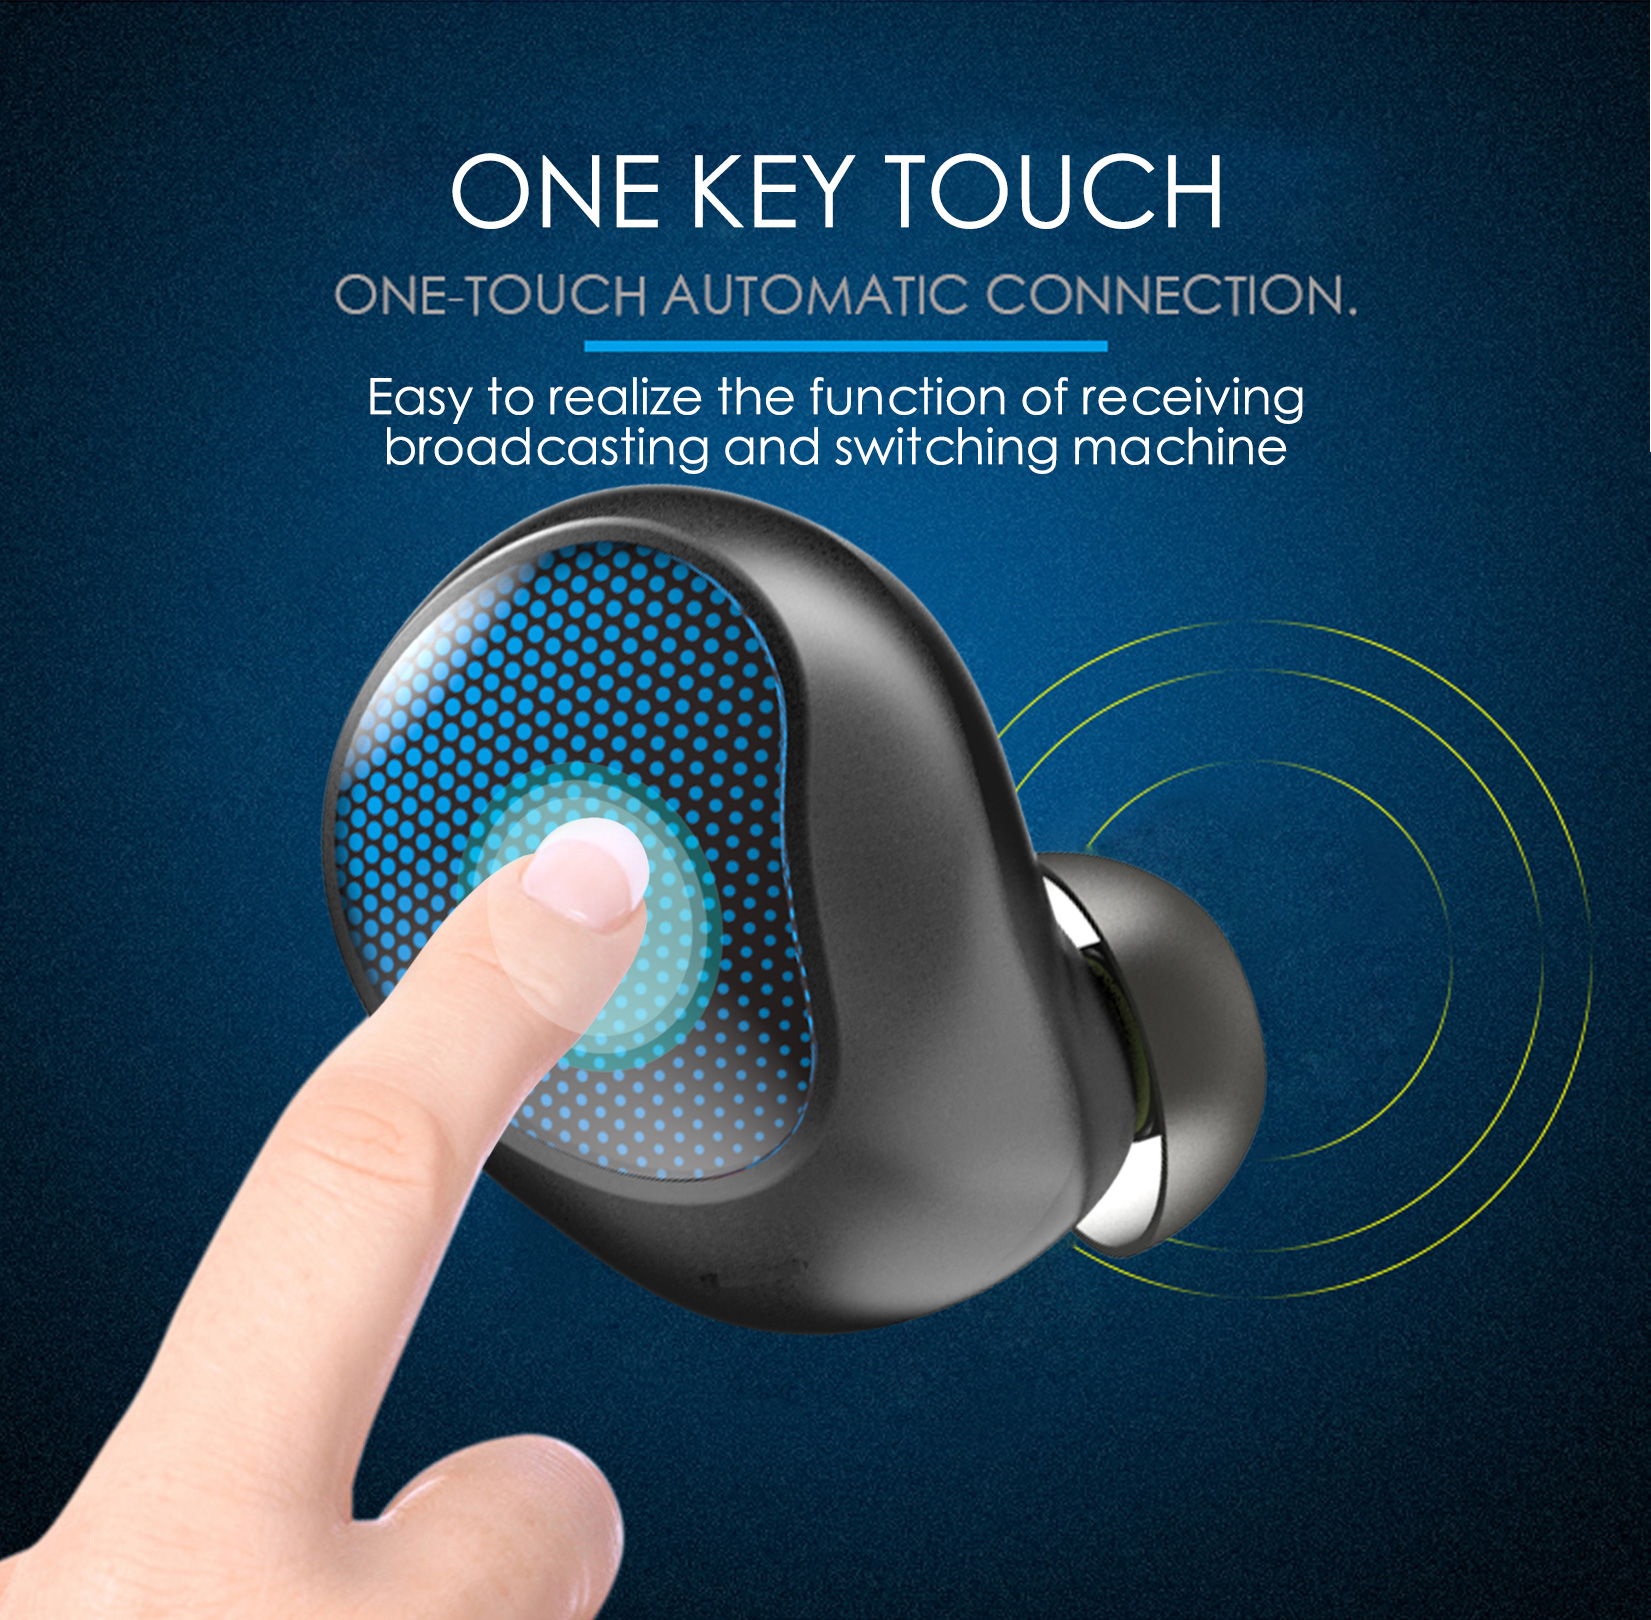 T10 business car headset 4.2 charging bin Blue tooth headset touch mini wireless small headphones  for iphone